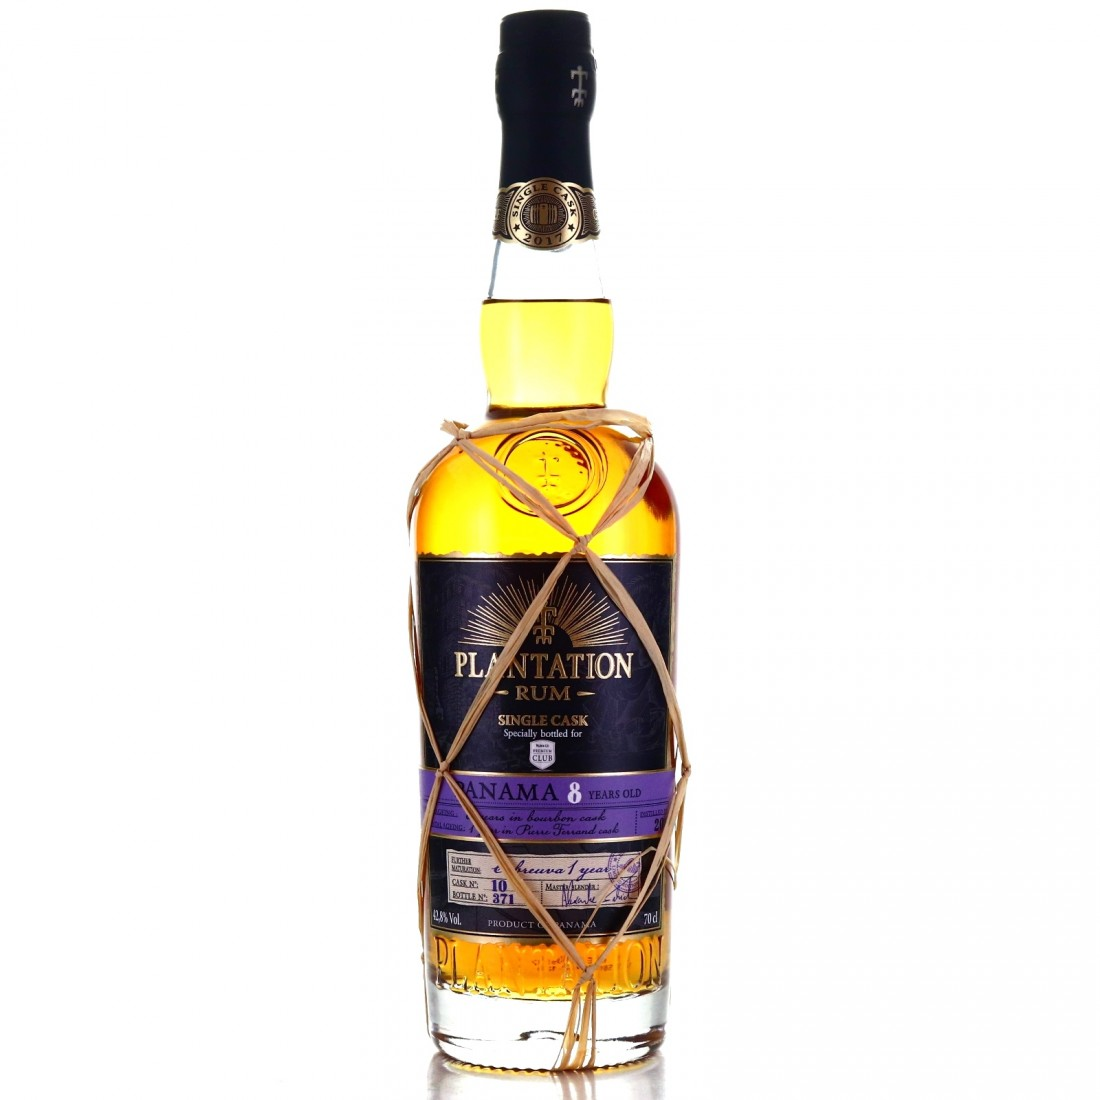 Panama Rum 2009 Plantation 8 Year Old Single Cabreuva Cask Finish #10 / Rum&Co